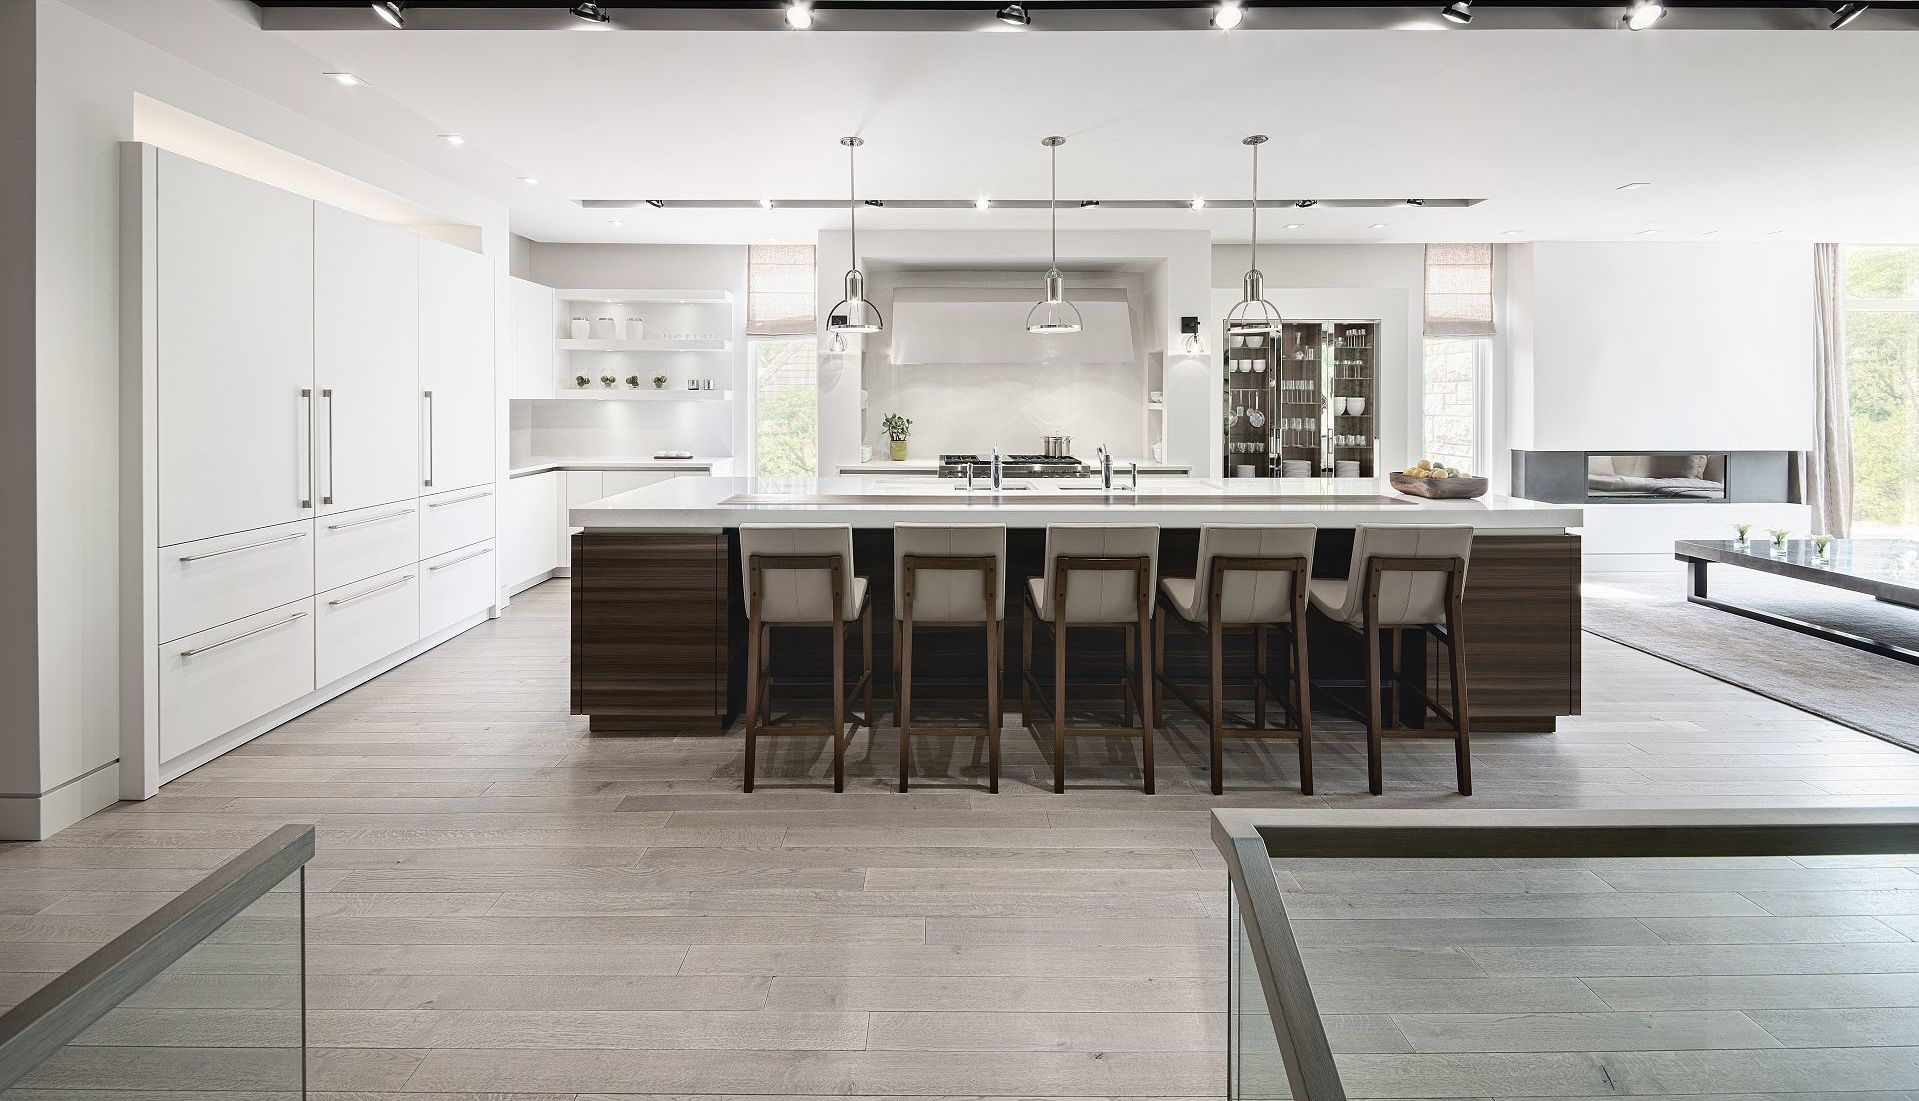 Modern Kitchen Design Elements An Extravagant Island That Combines Classic And Modern